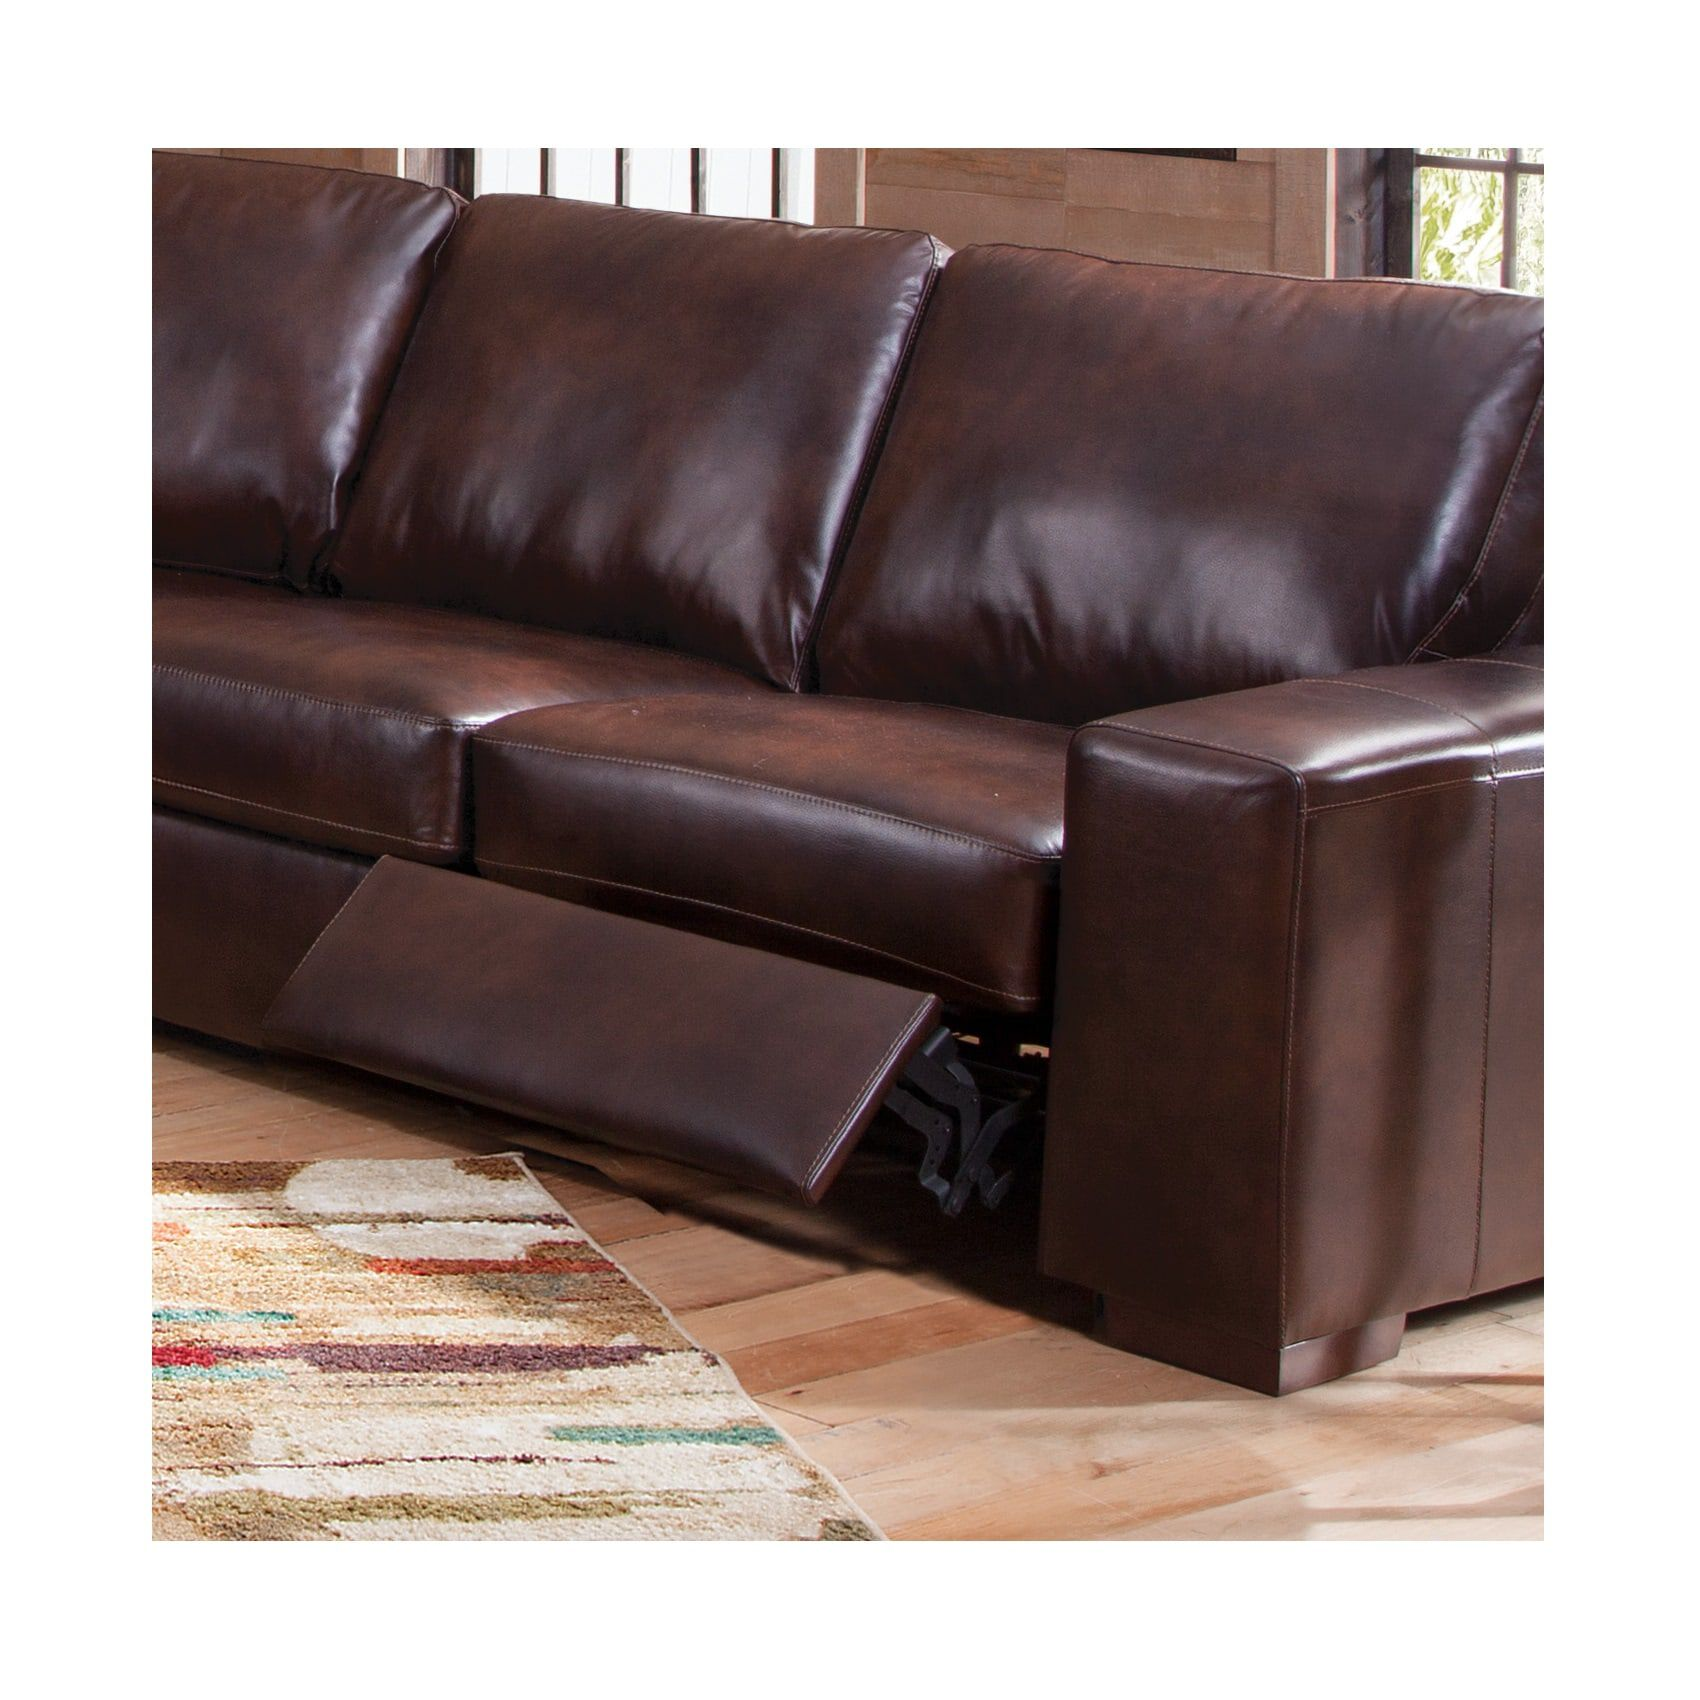 Sofa Bed Express Delivery Woodhaven Industries Living Room Sets 5 Piece Daytona Living Room